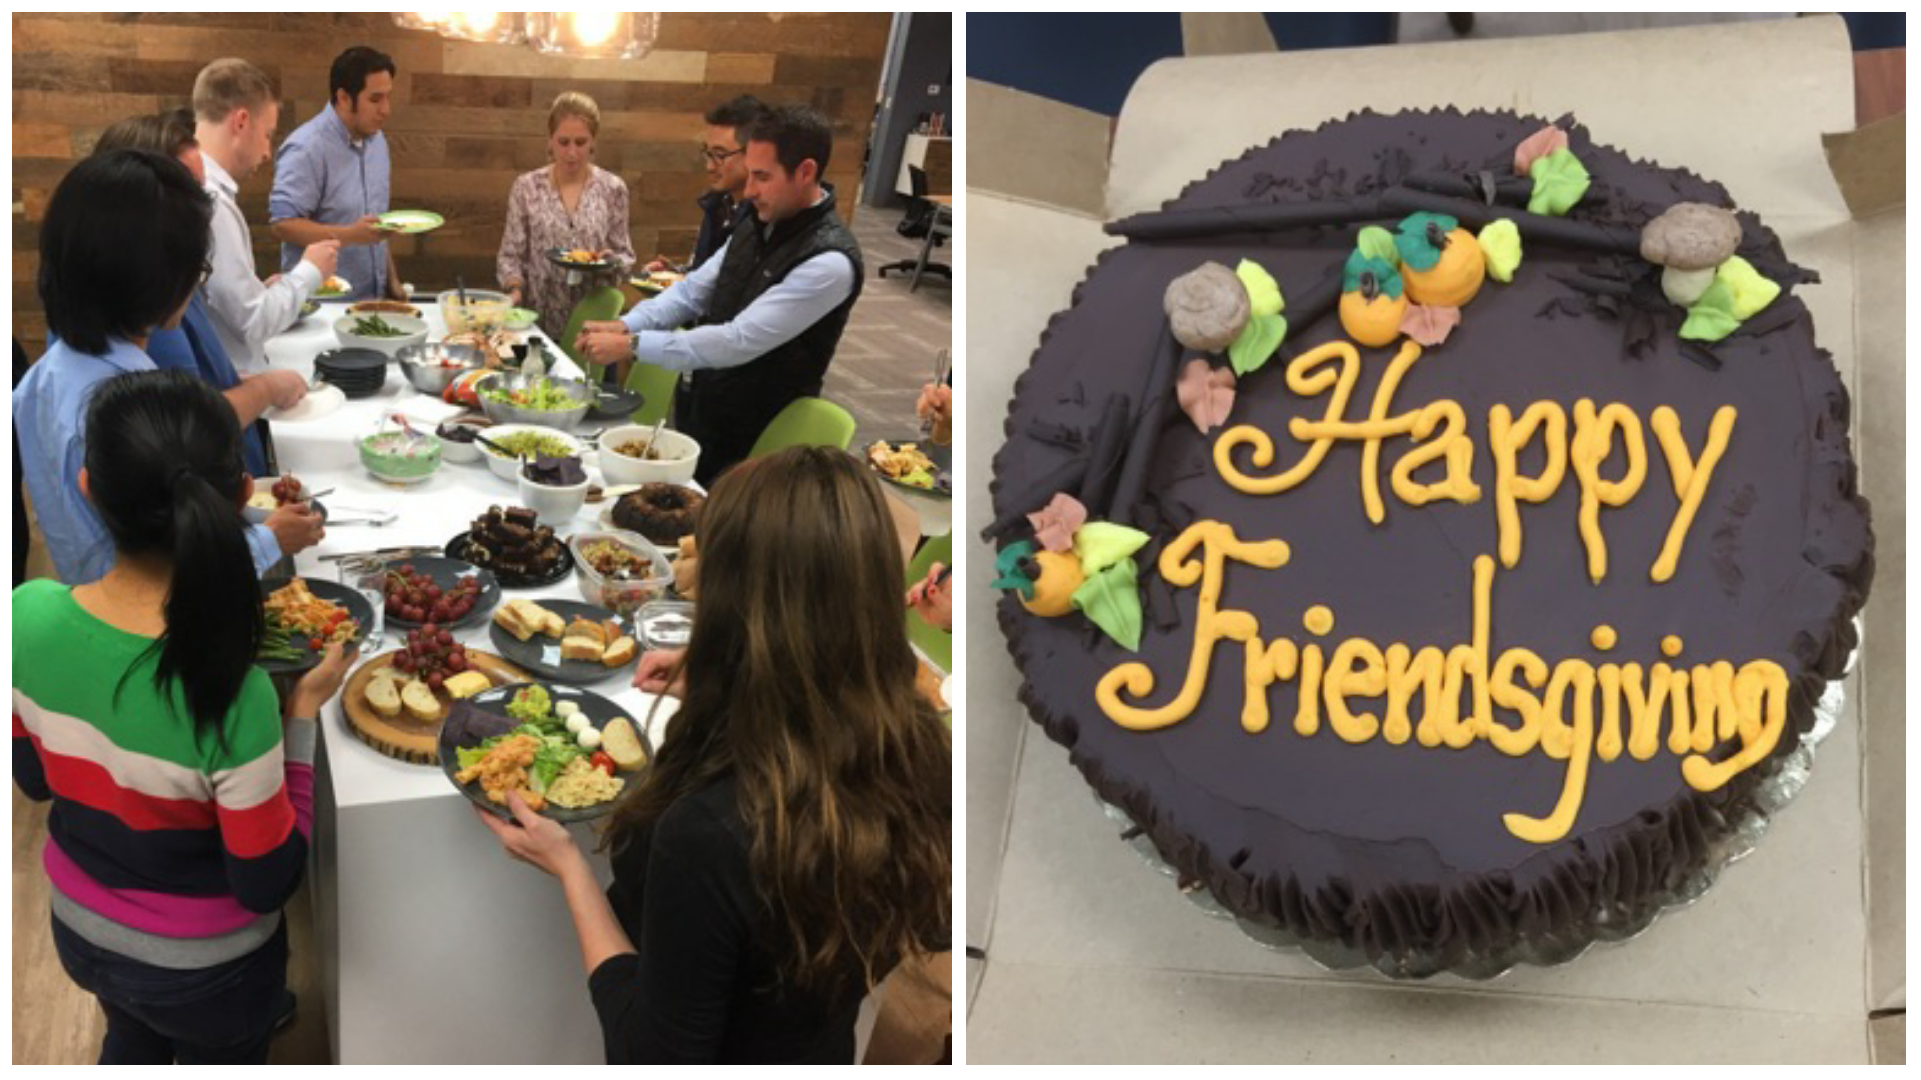 What We're Thankful For At PerformLine